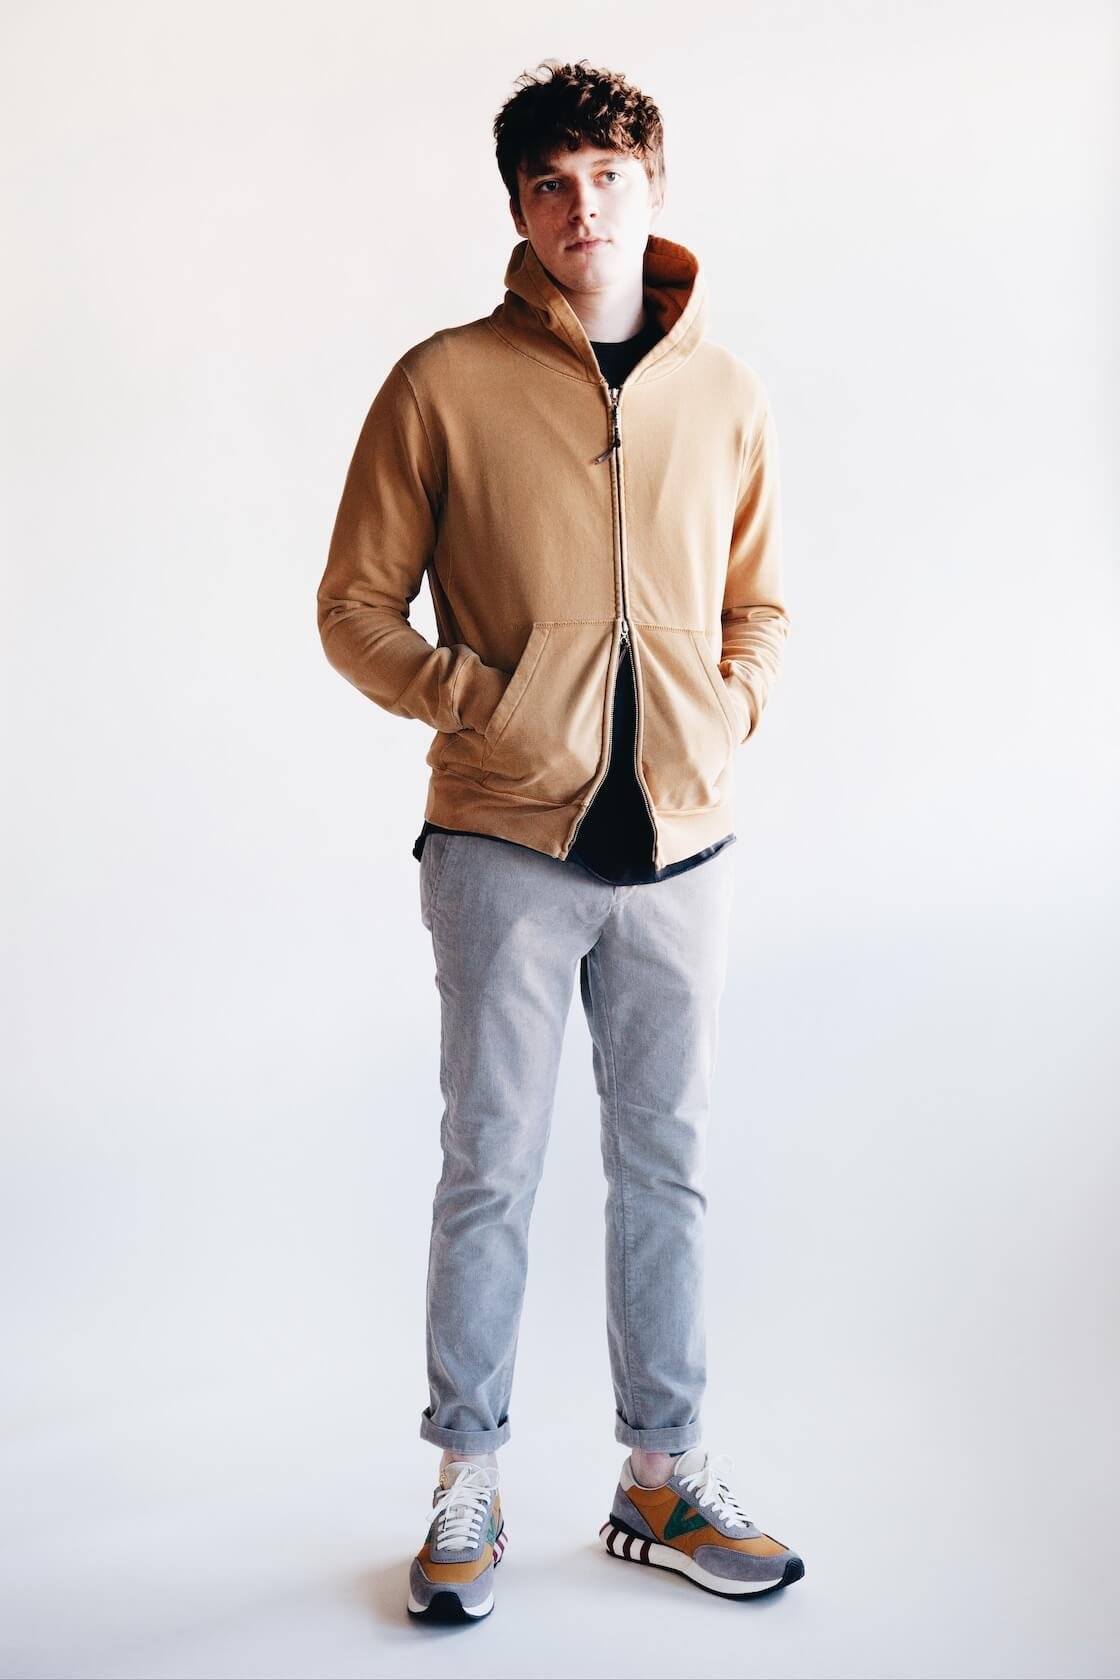 remi relief special finish fleece zipped hoodie, stretched corduroy slacks and visvim attica trainers on body